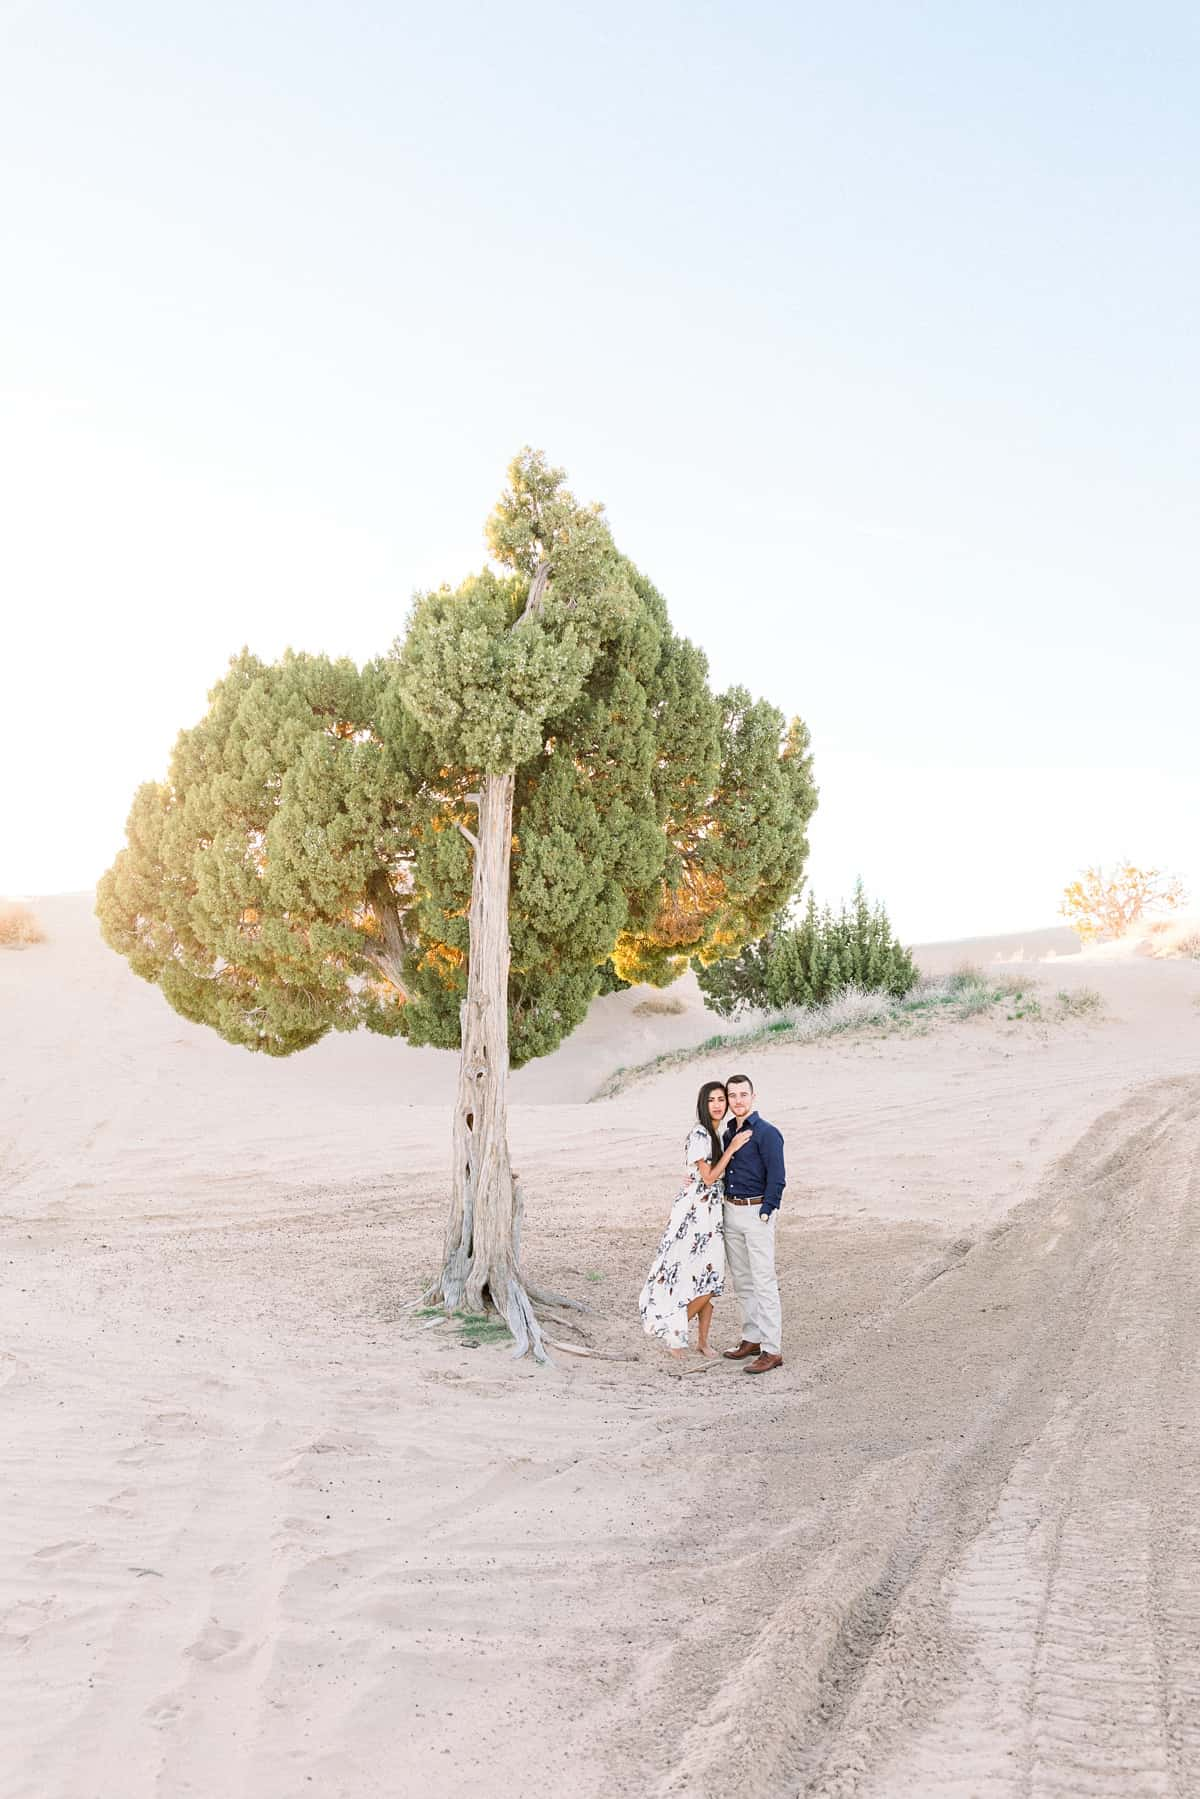 Couples engagement session, desert photos at the Little Sahara sand dunes in Utah, Utah wedding photographer, what to wear for engagement pictures